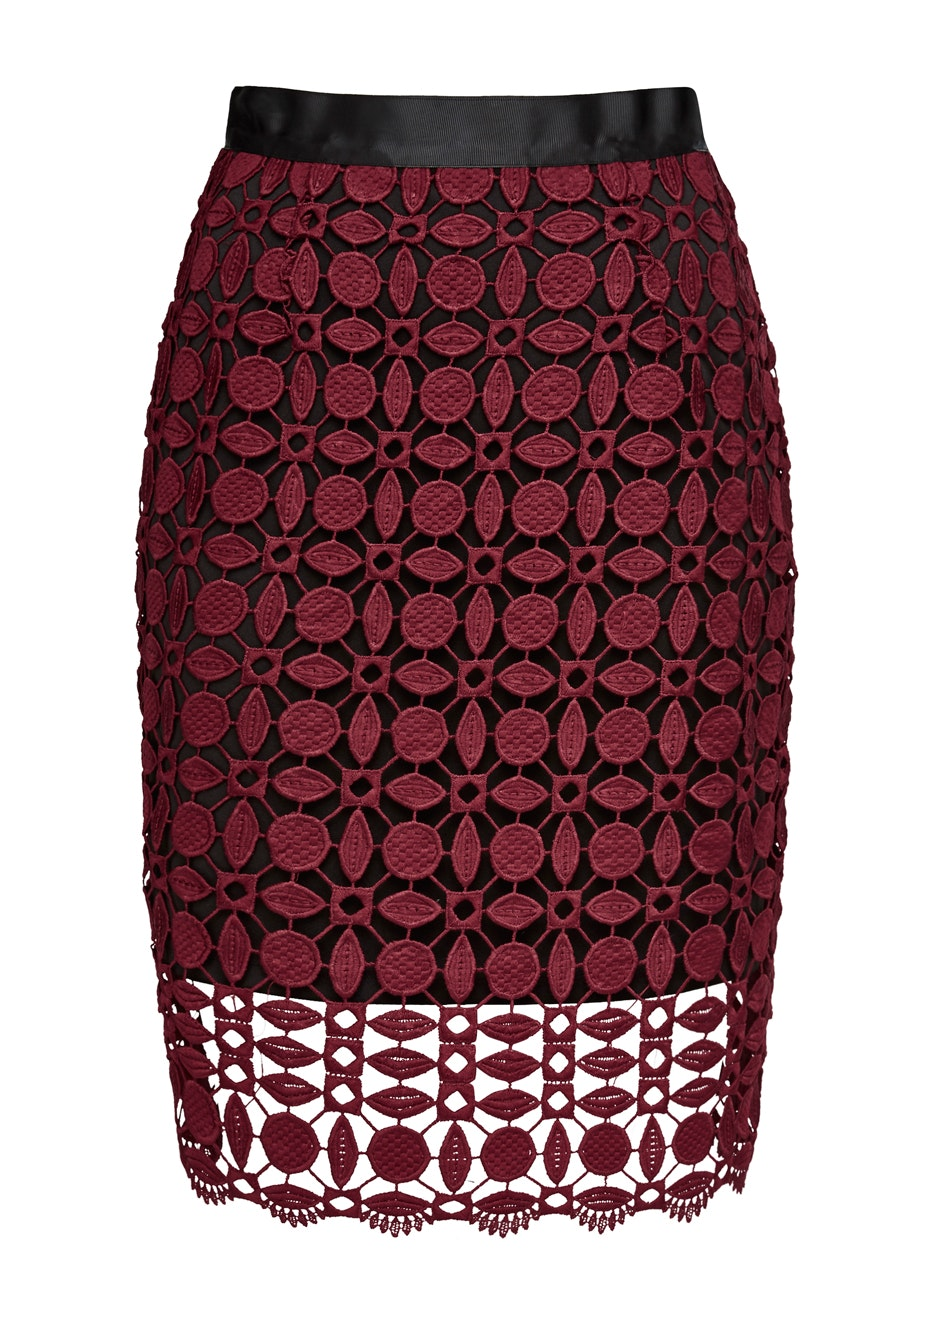 French Connection - Geo Lace Skirt - Bordeaux